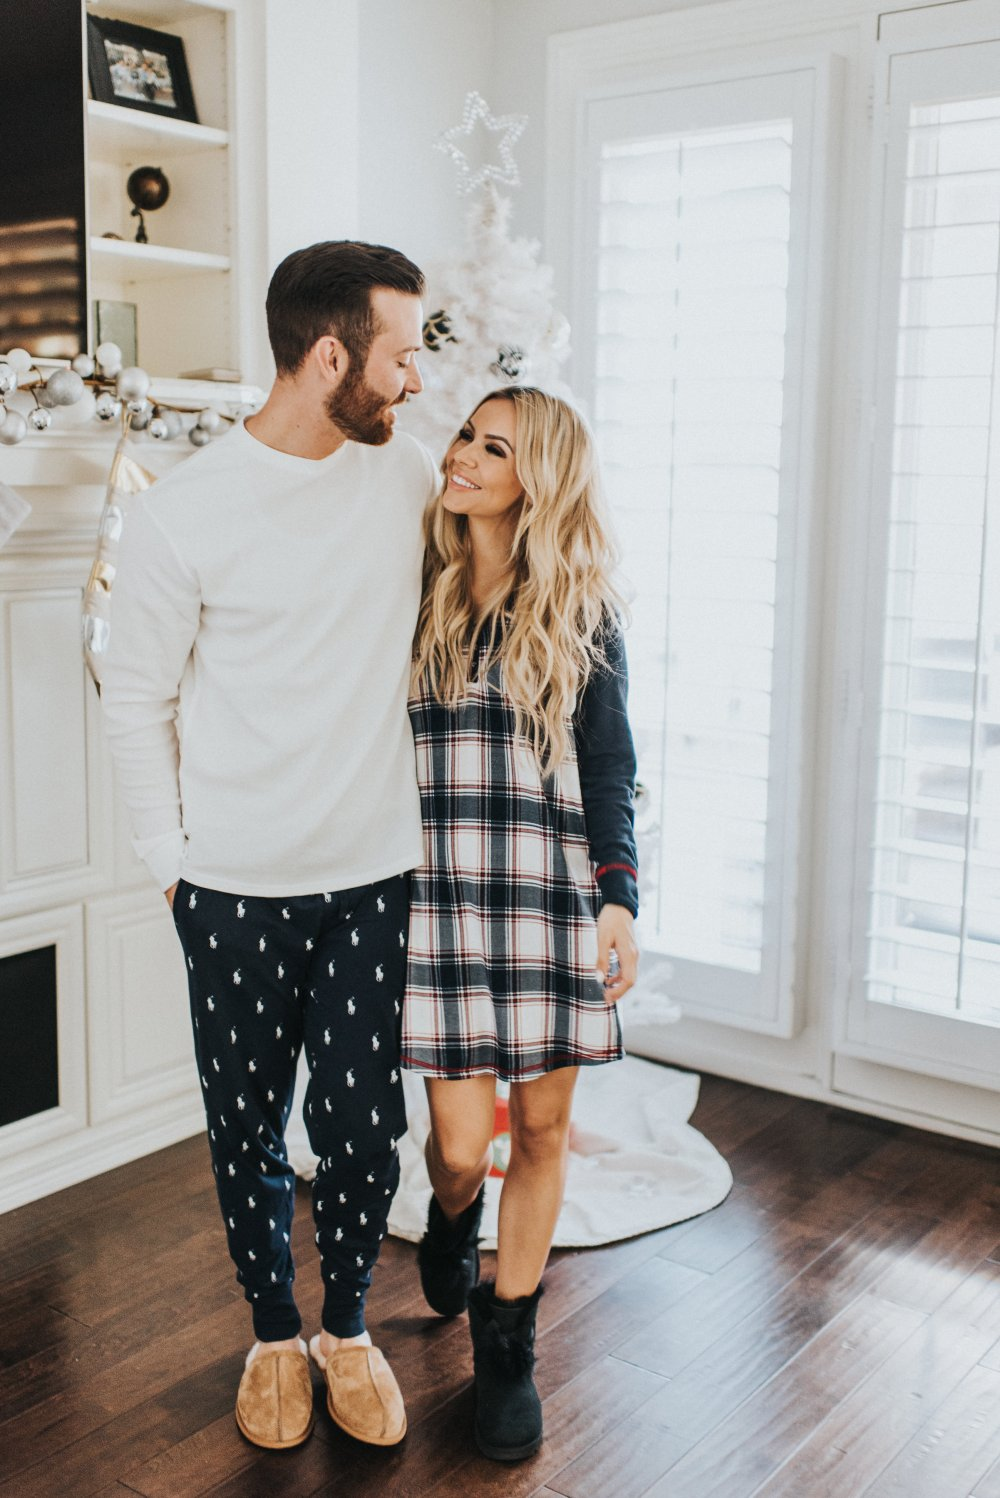 Another great gift guide for your man! Your guy will love lounging around the house in these super cozy items! My PJ gown is so soft and I love it! #trulydestiny #holidaypajamas #giftguide